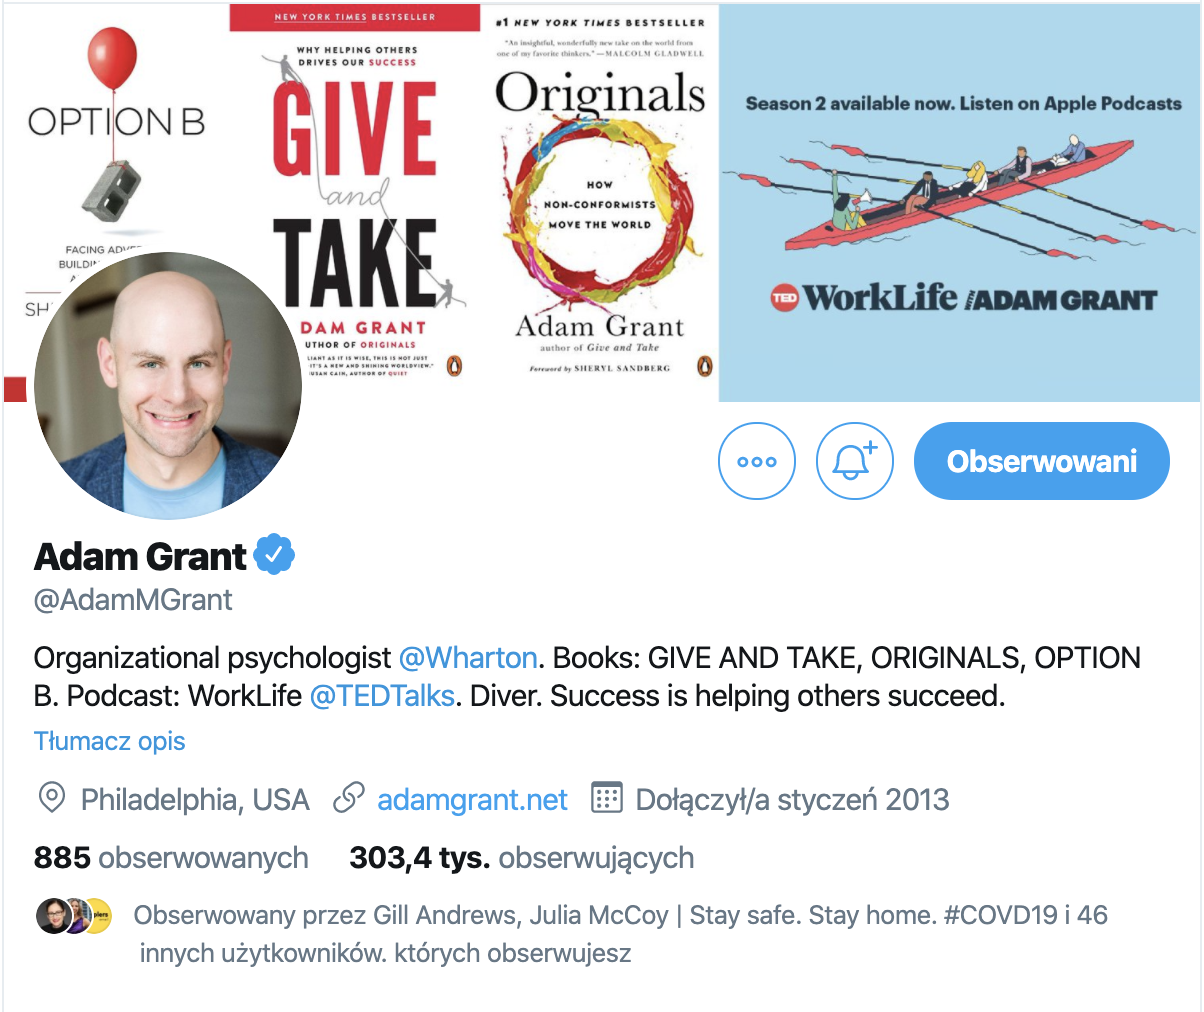 Adam Grant promoting on Twitter.